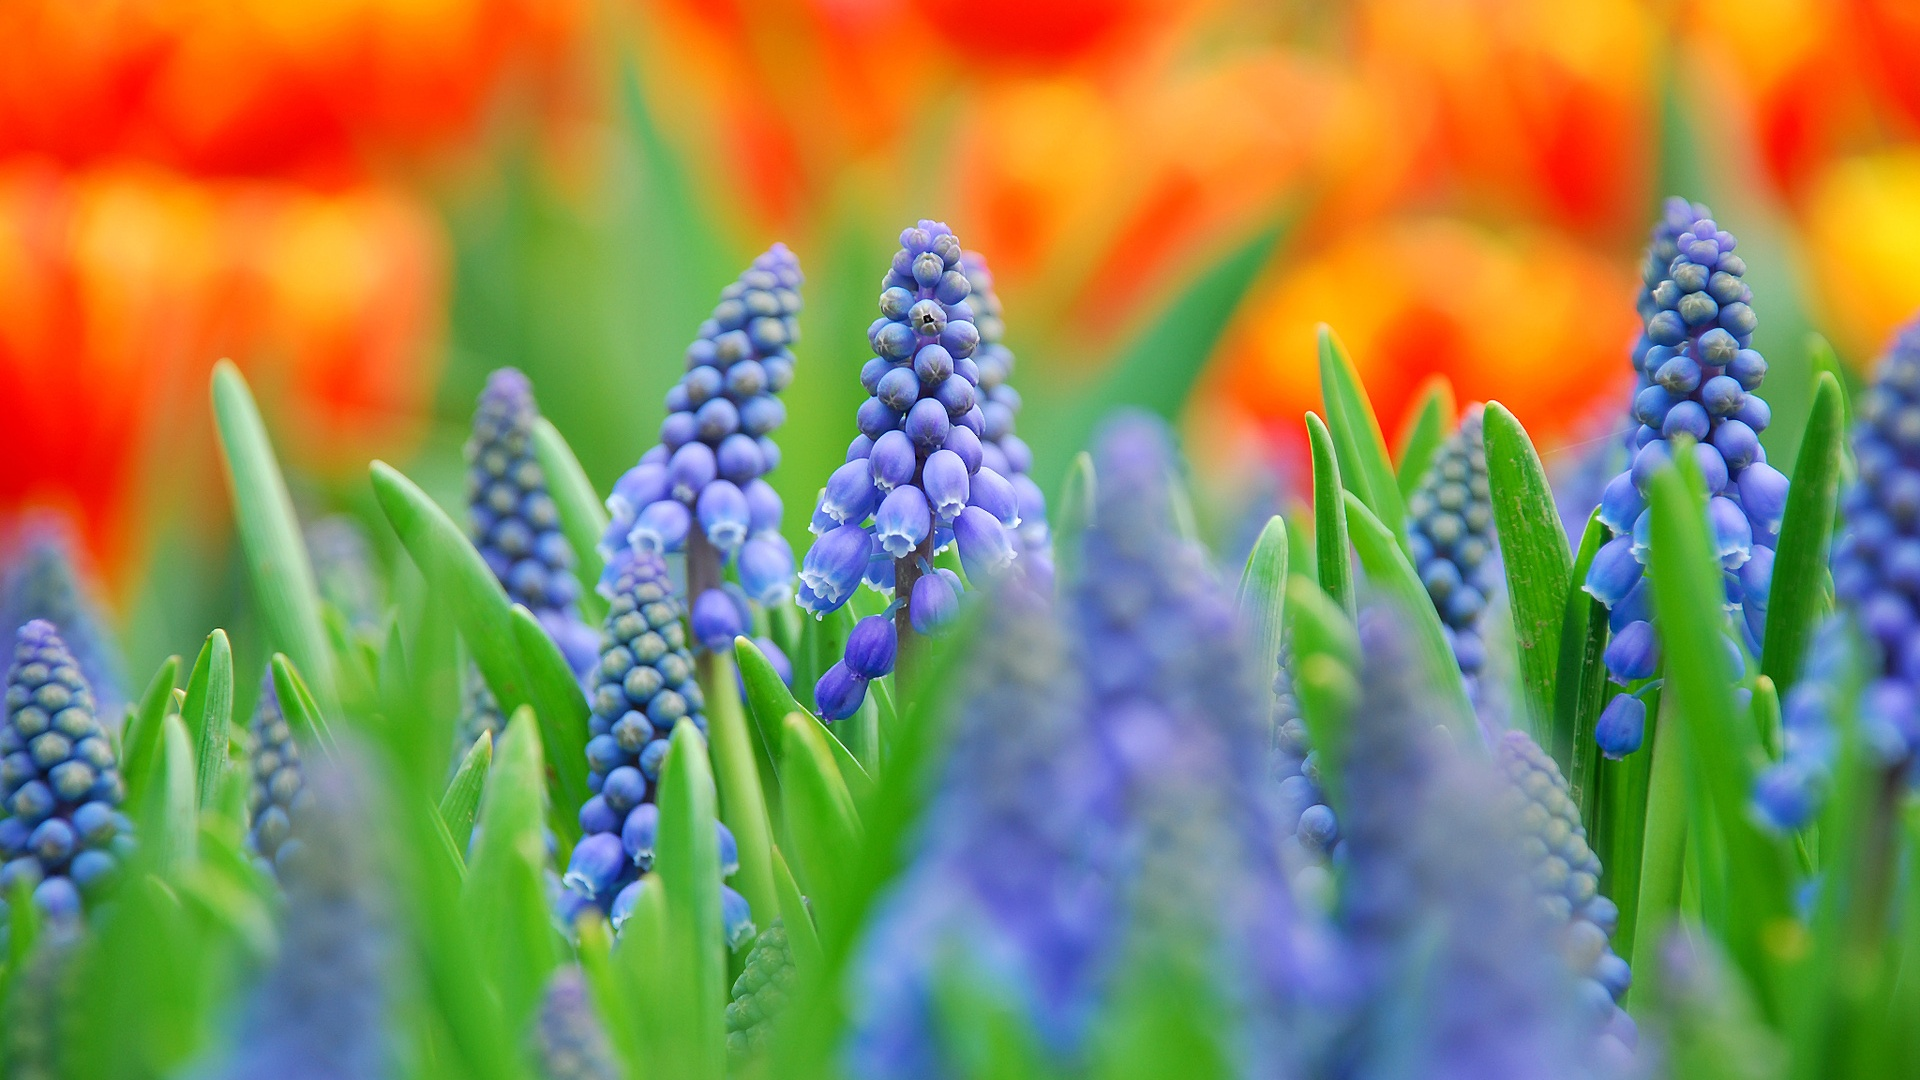 Wallpaper Muscari, blue flowers, blurred photography ...